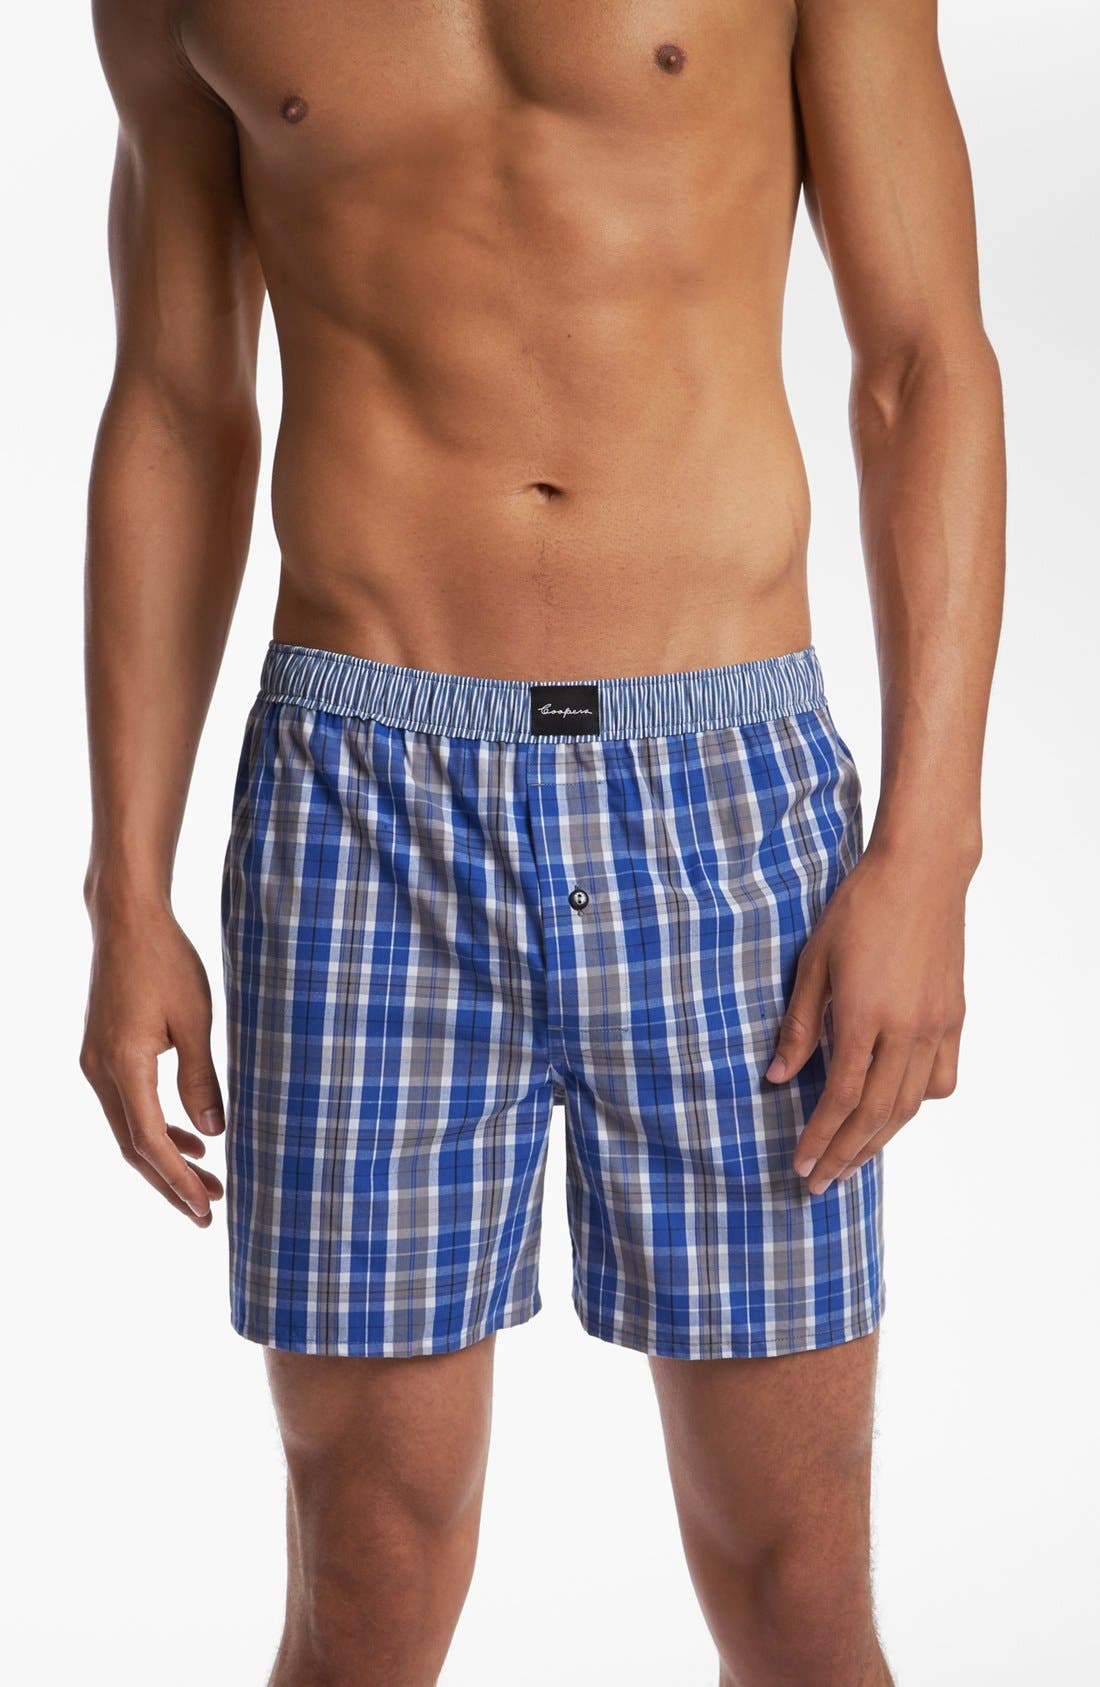 Alternate Image 1 Selected - Coopers by Jockey® Boxers